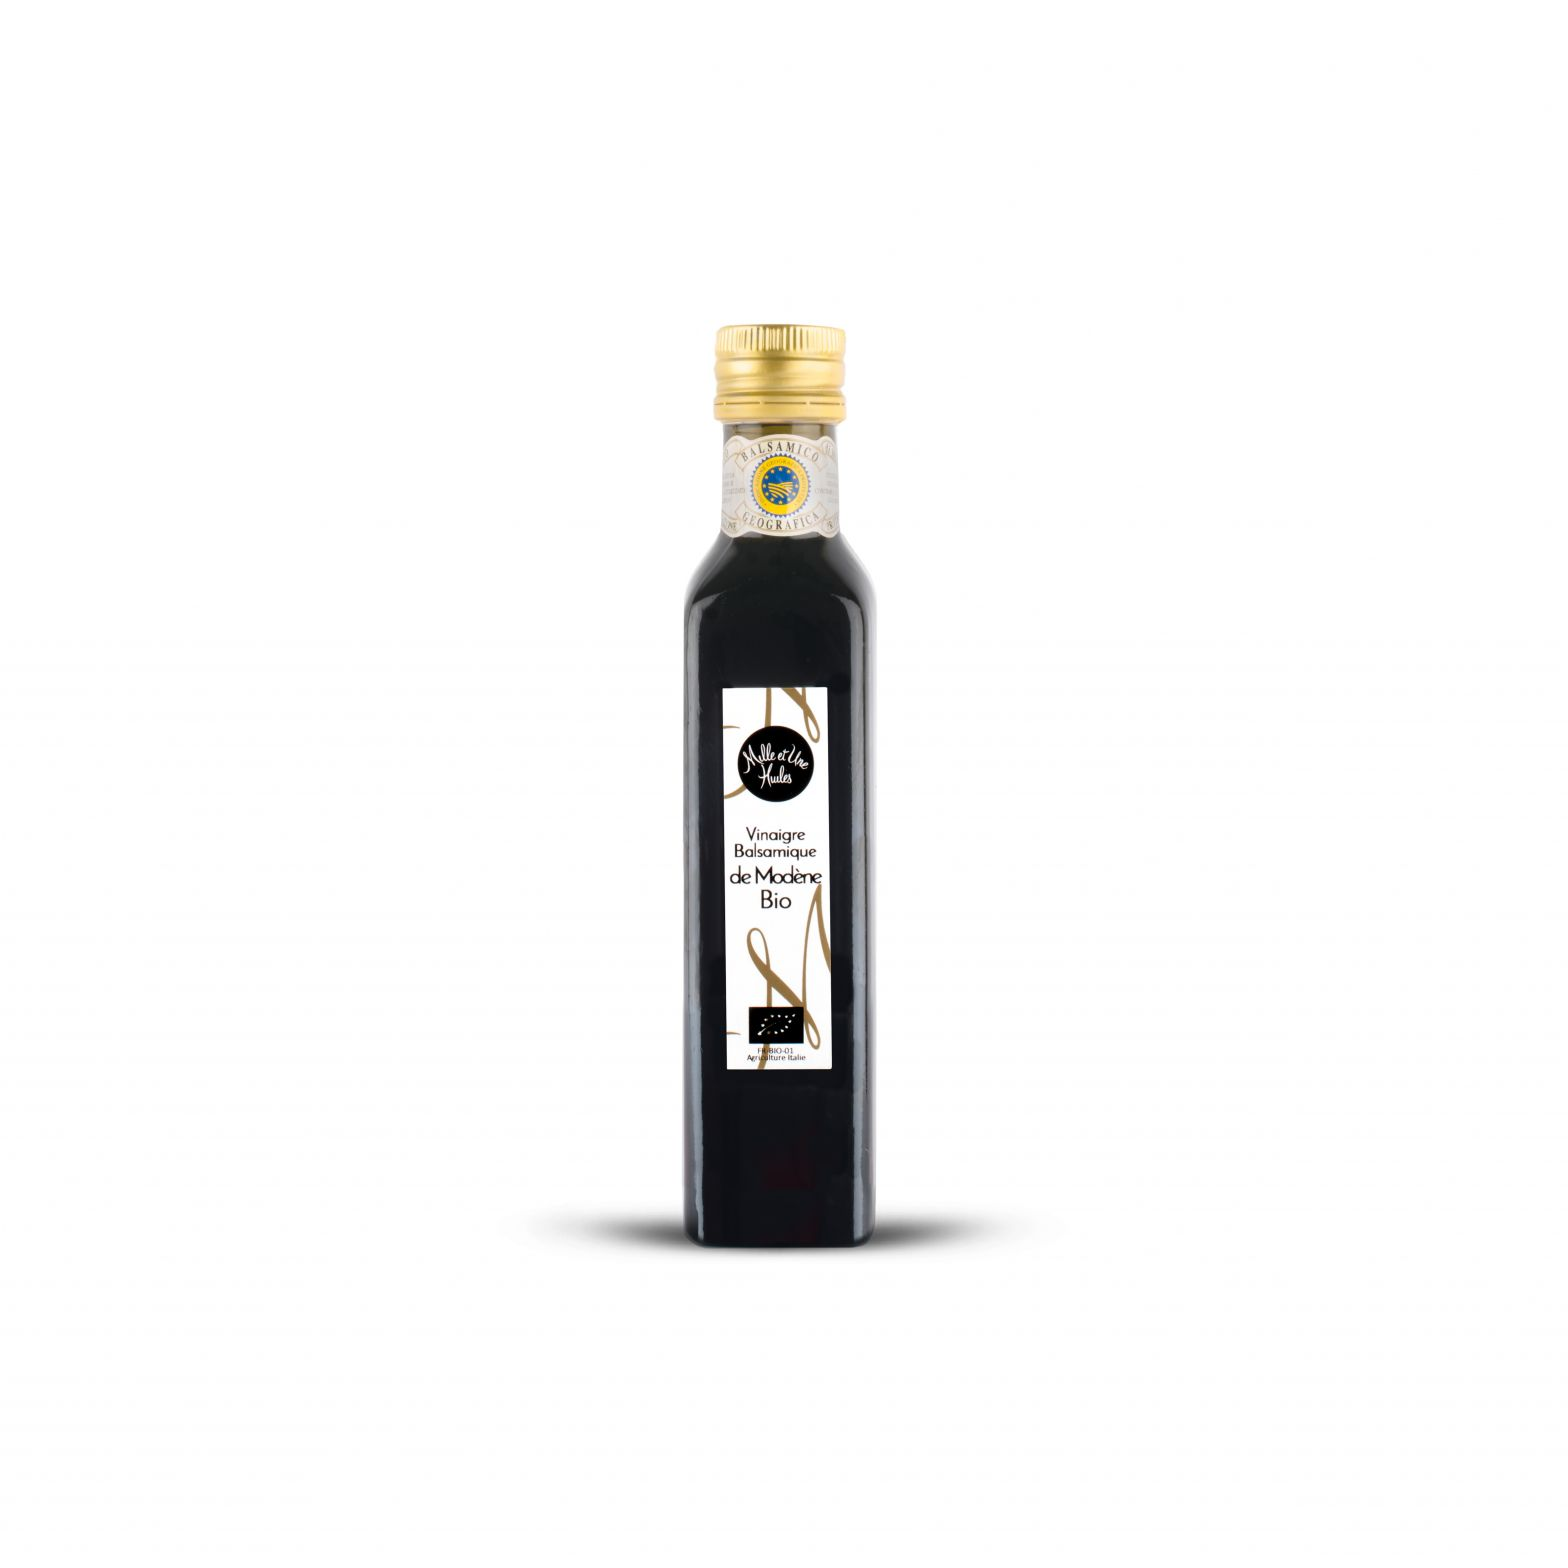 Organic condiment made from balsamic vinegar from Modena